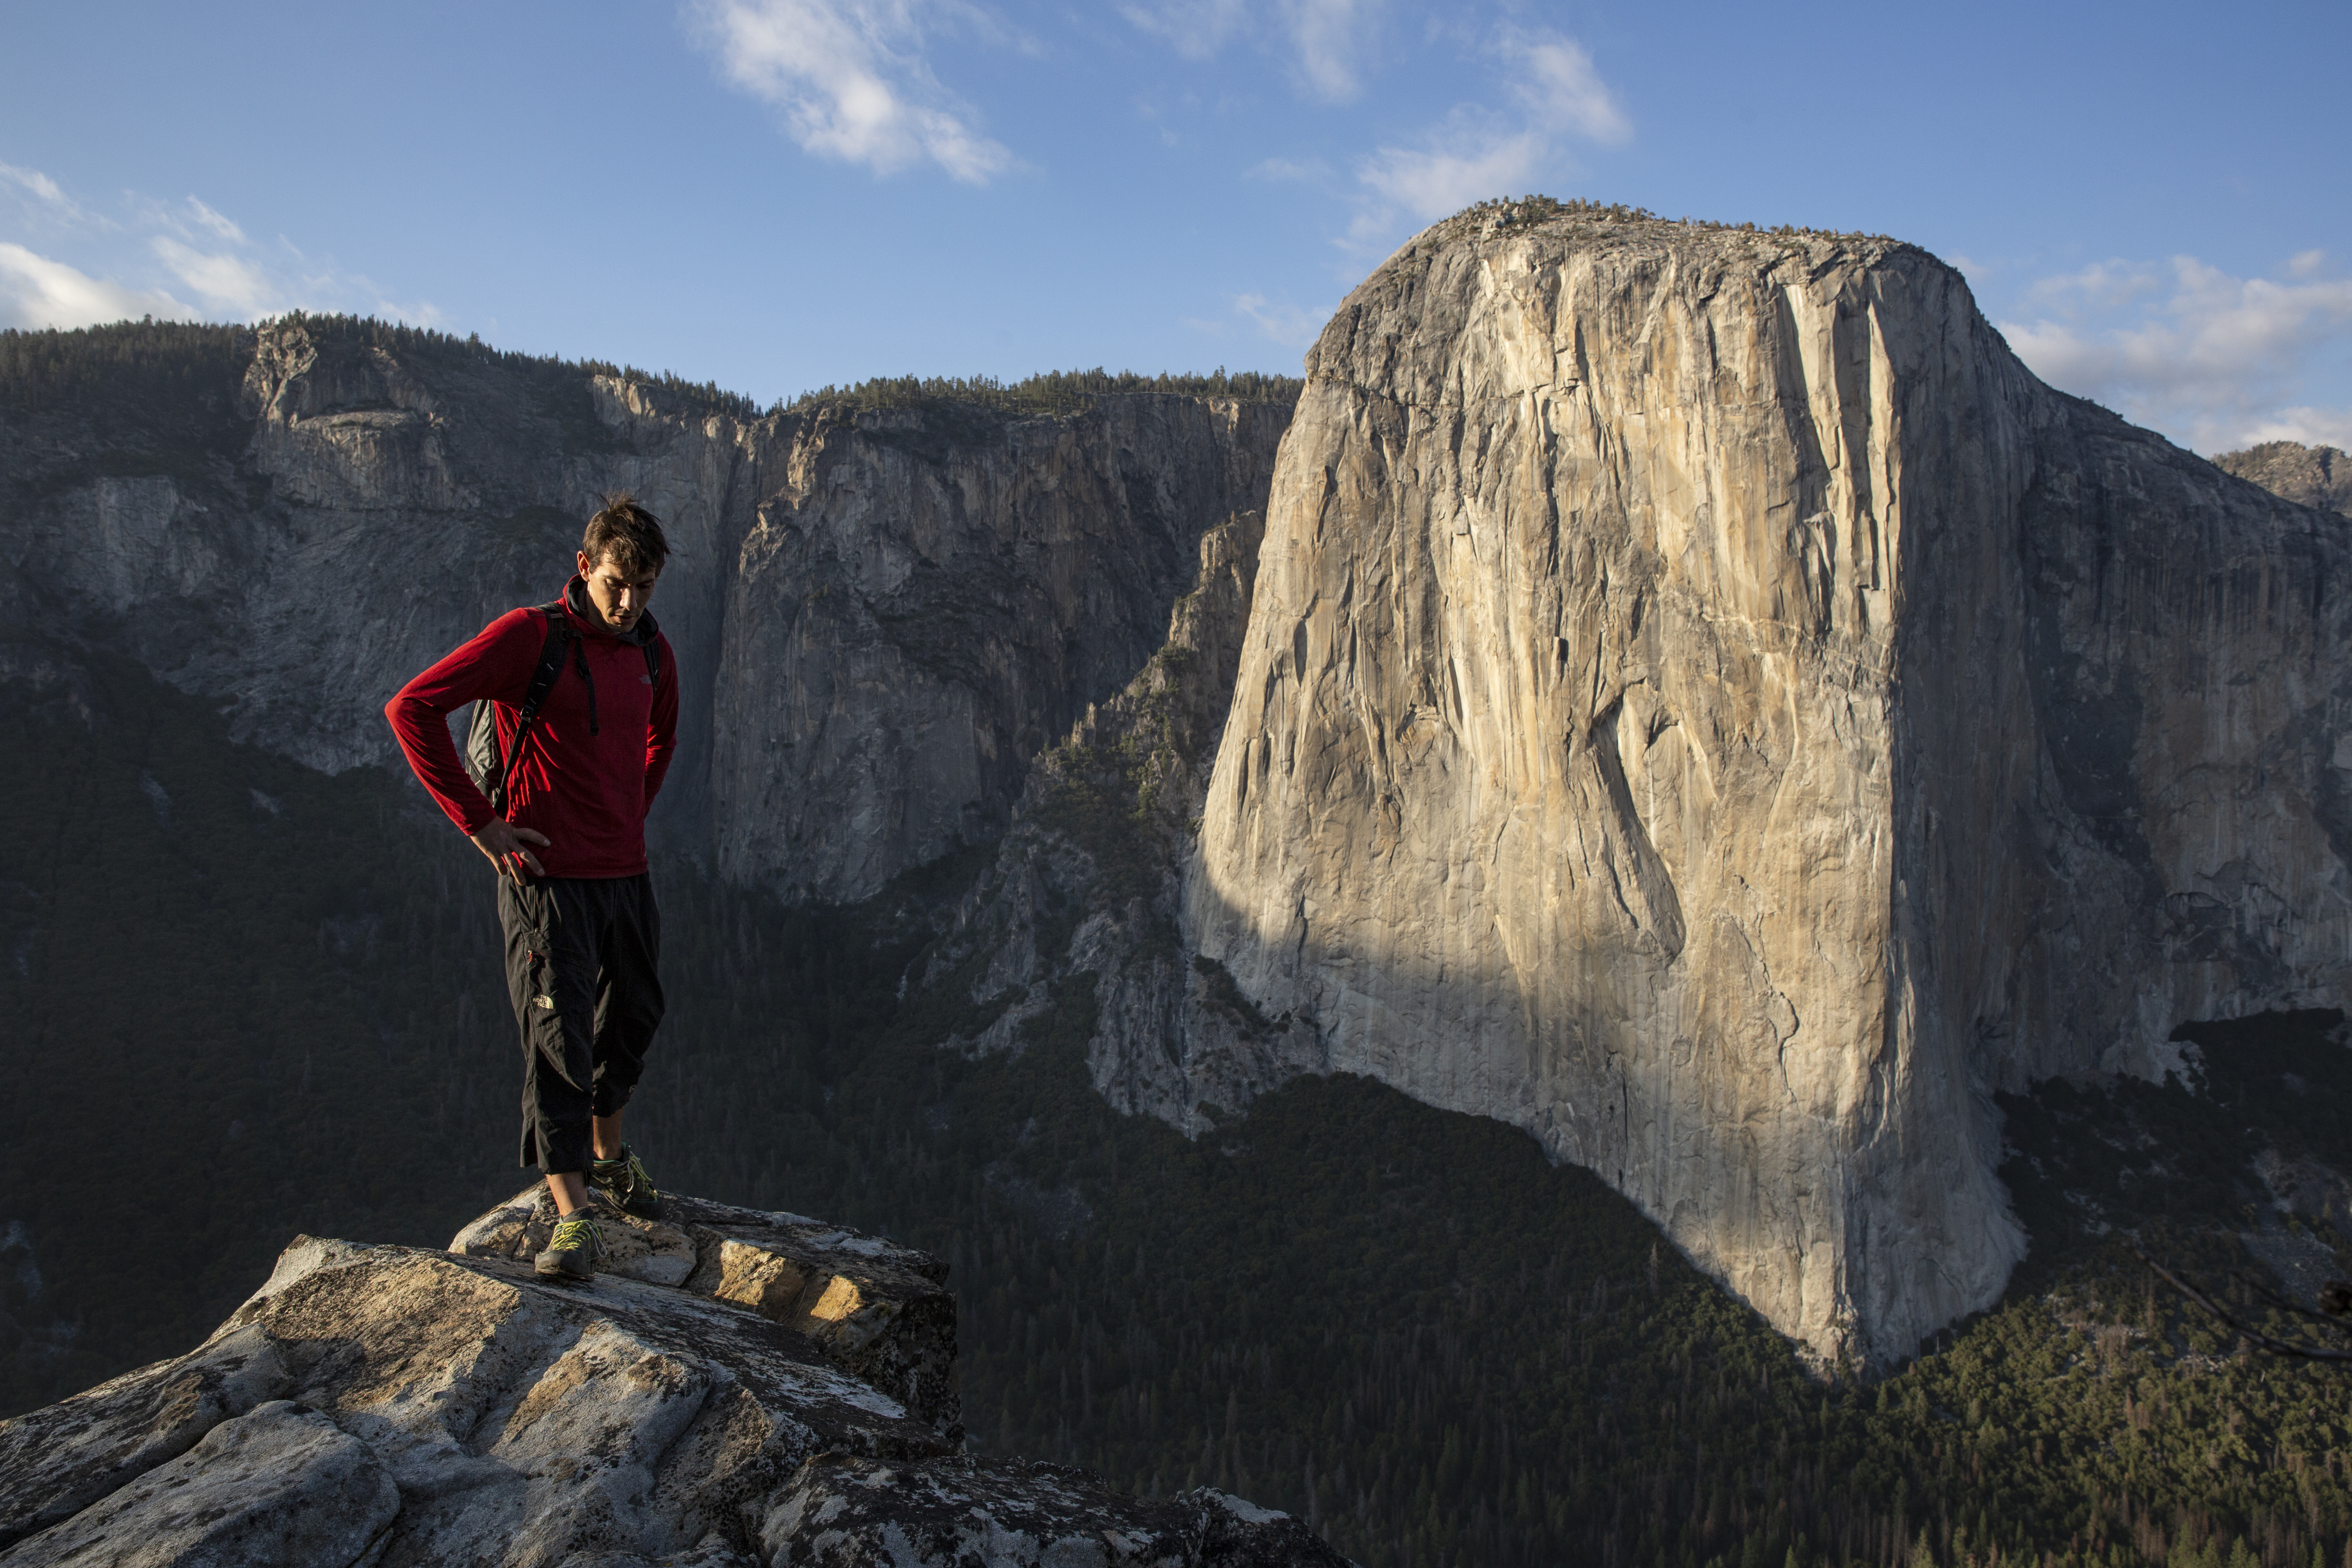 'What If He Fell?' The Huge Risks of 'Free Solo' Mean Its Reward Could Be the Best Doc Oscar